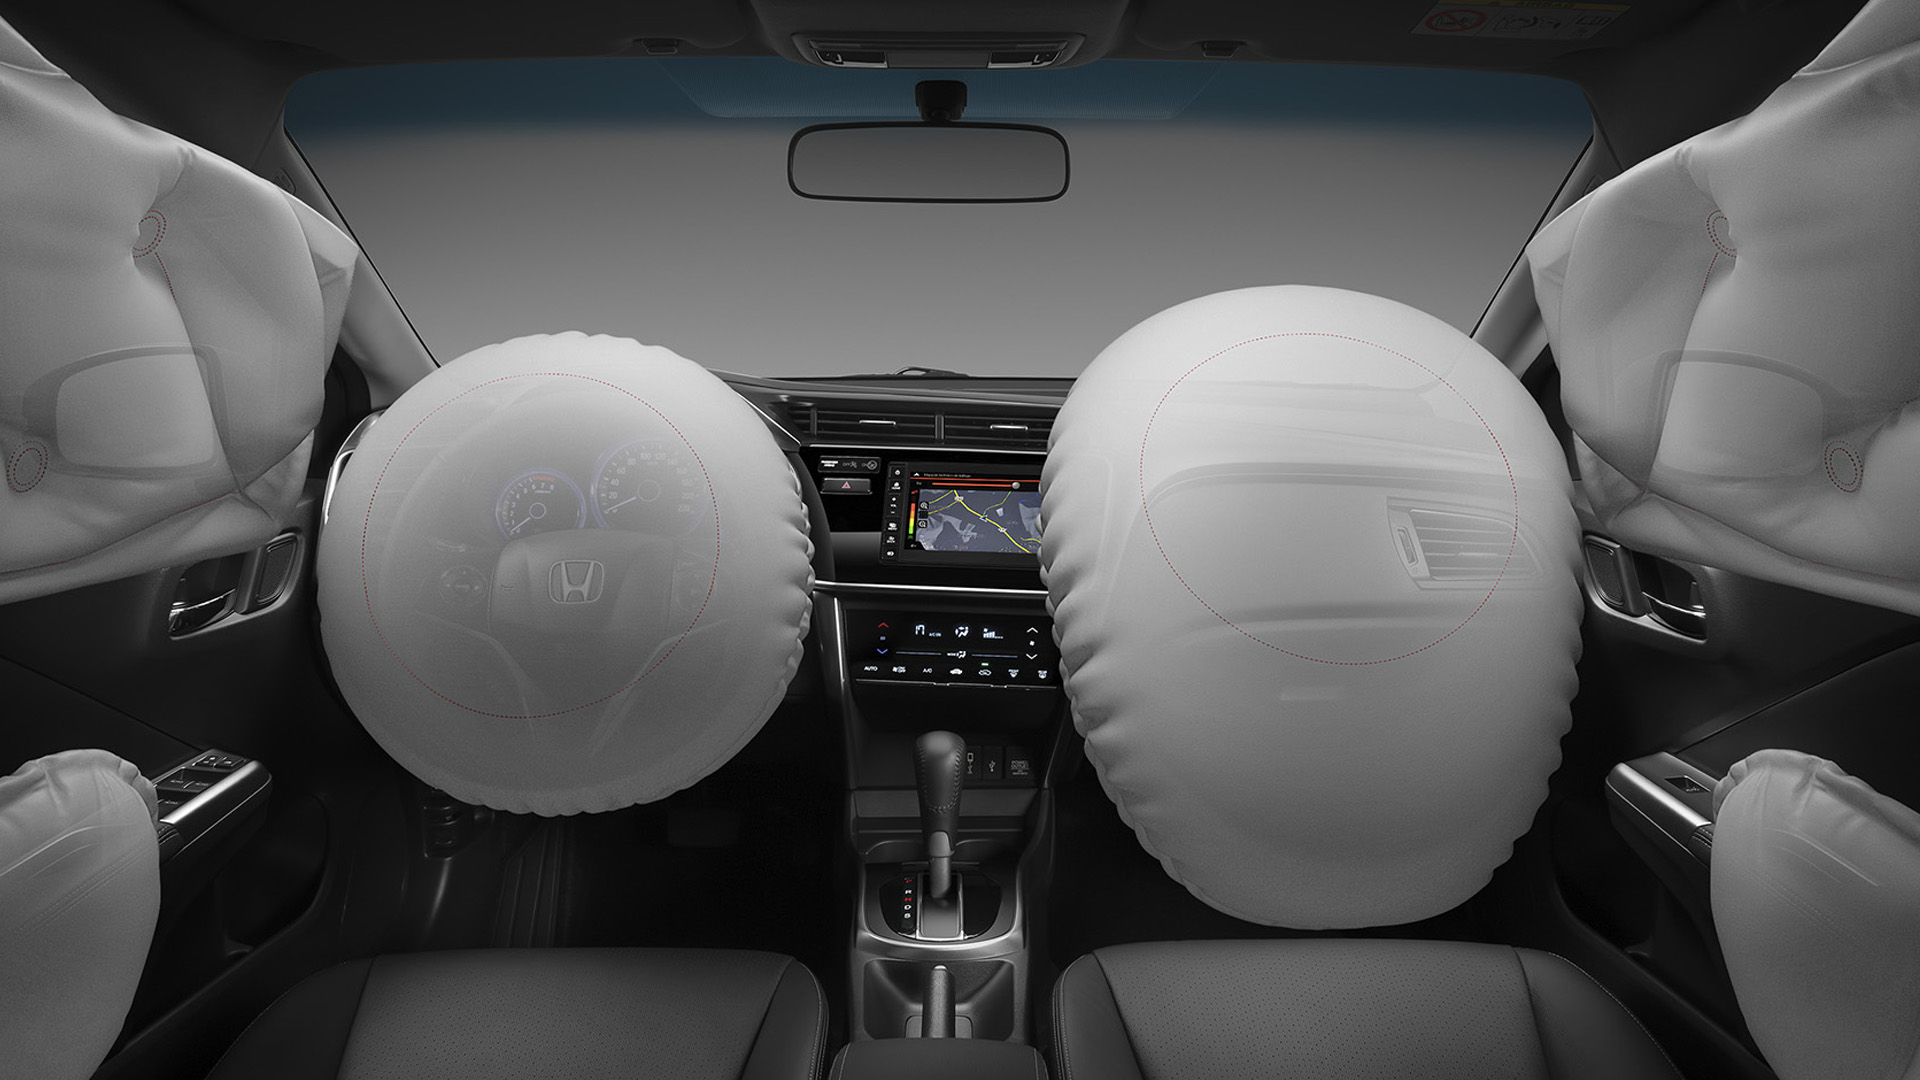 Honda City - 6 airbags: frontais, laterais e de cortina